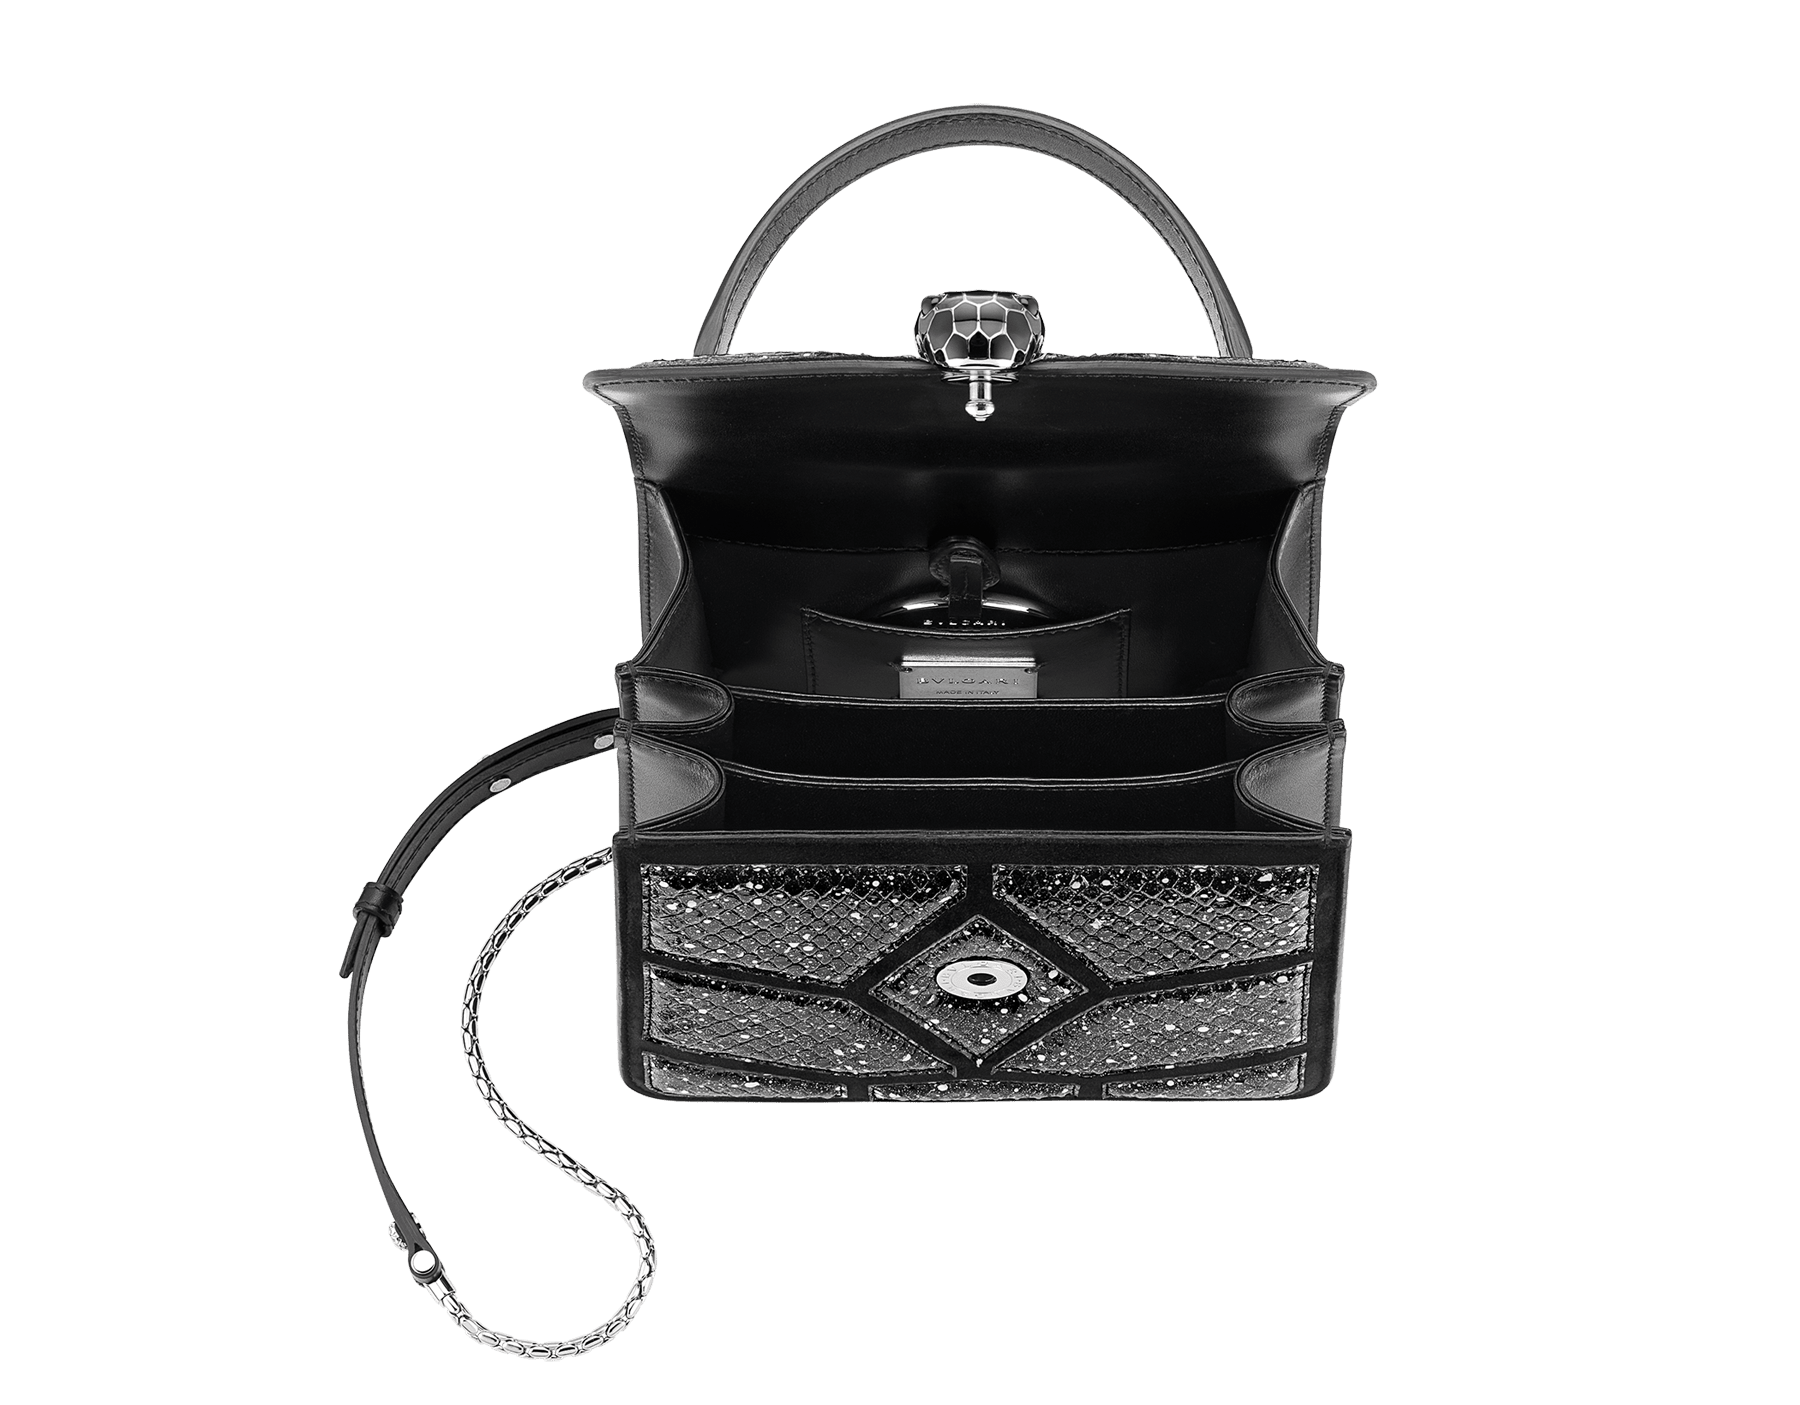 Serpenti Forever crossbody bag in black and white Stardust Cosmic python skin and black calf leather. Snakehead closure in palladium plated brass decorated with black enamel, and black onyx eyes. 288223 image 4